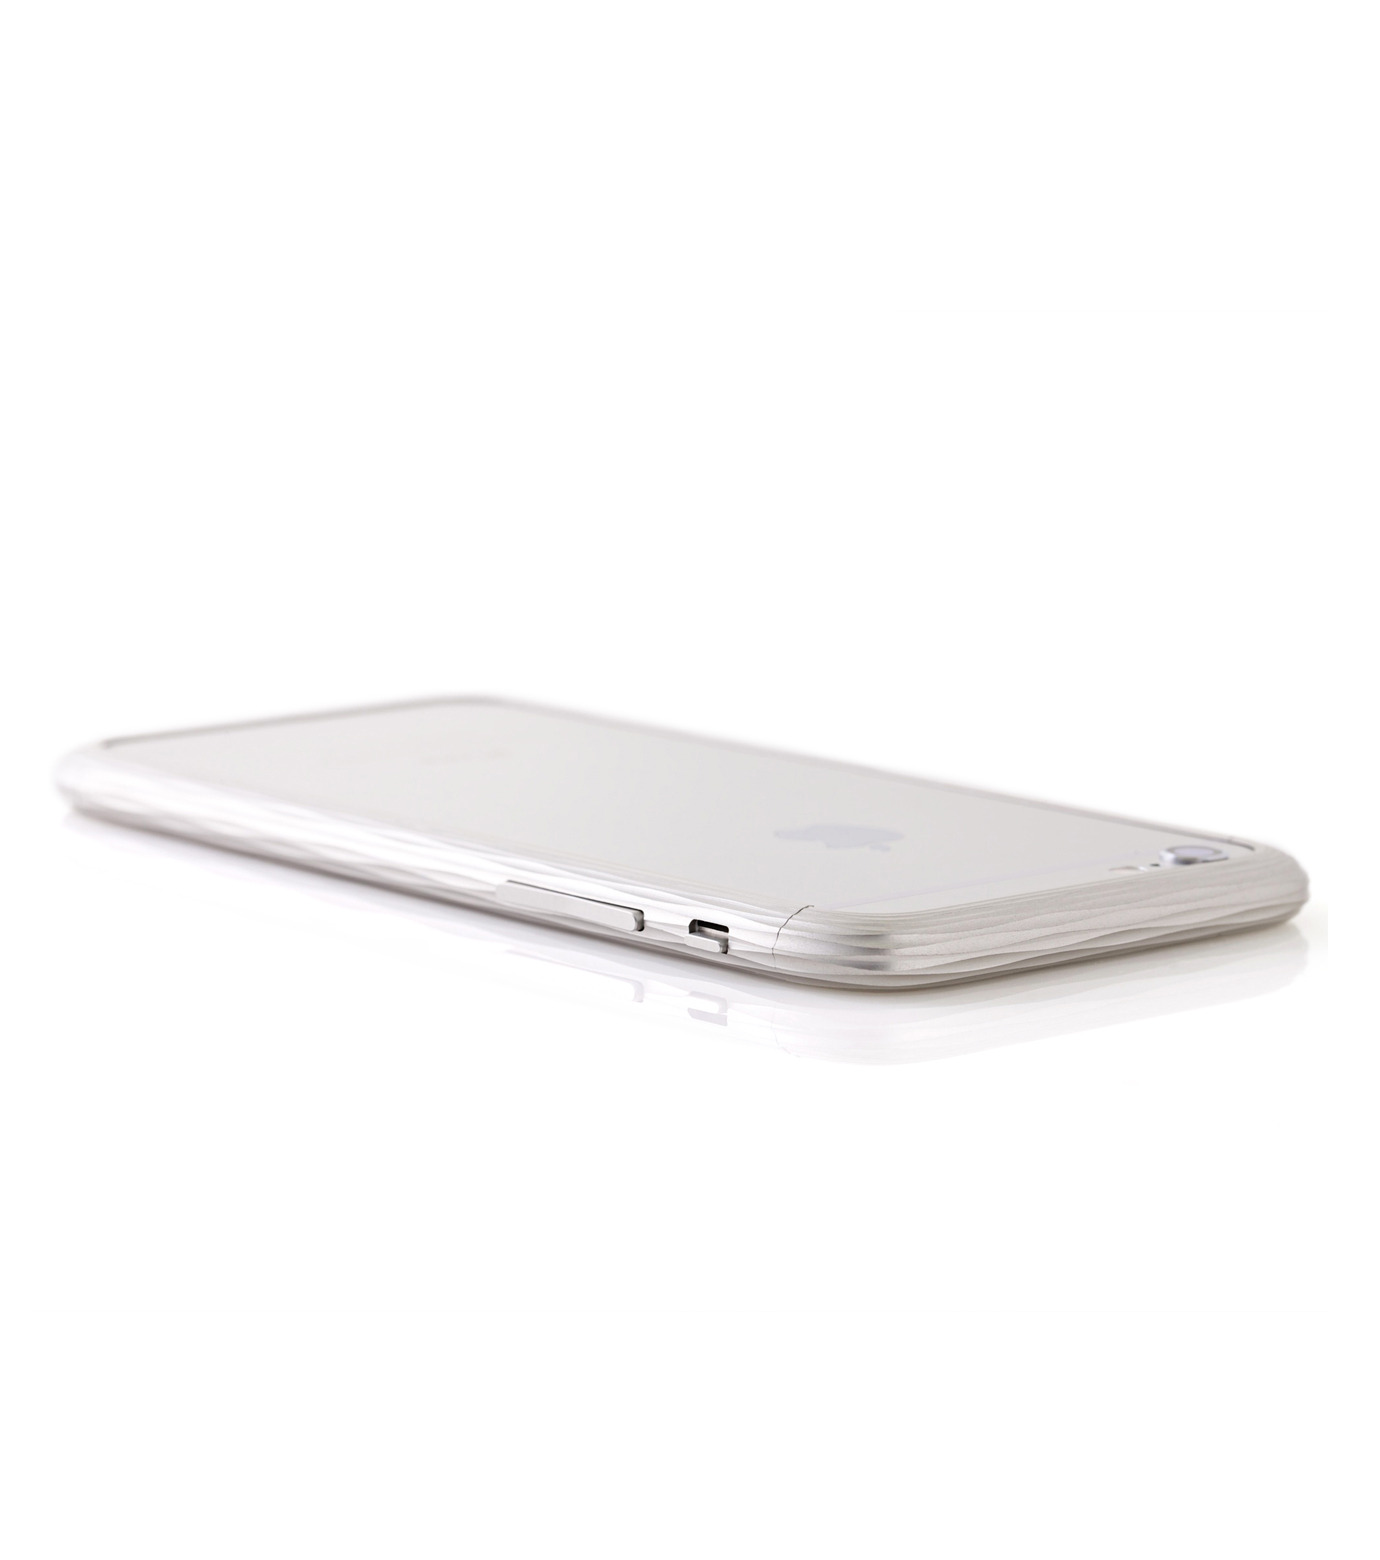 SQUAIR(スクエア)のThe Dimple for iPhone6s plus-SILVER(ケースiphone6plus/6splus/case iphone6plus/6splus)-SQDMP630-SLV-1 拡大詳細画像3